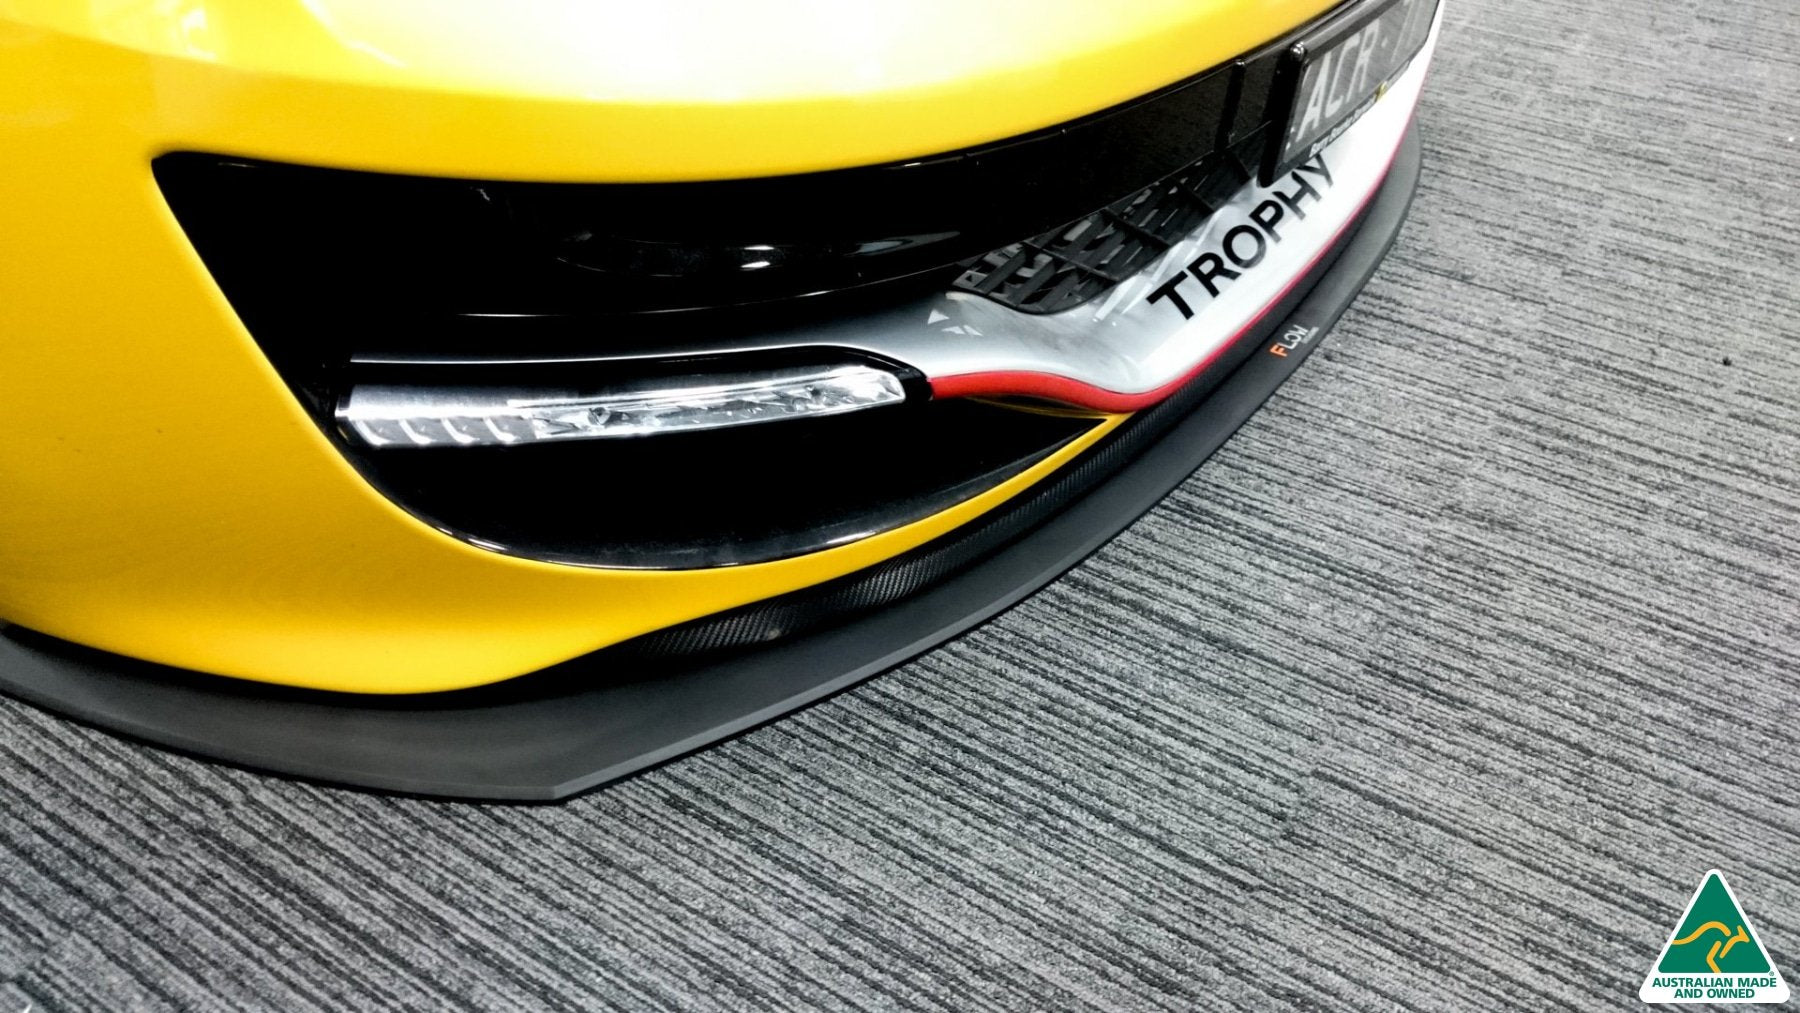 Flow Designs Renault  Megane RS MK3 Front Splitter Available at MODE Auto Concepts